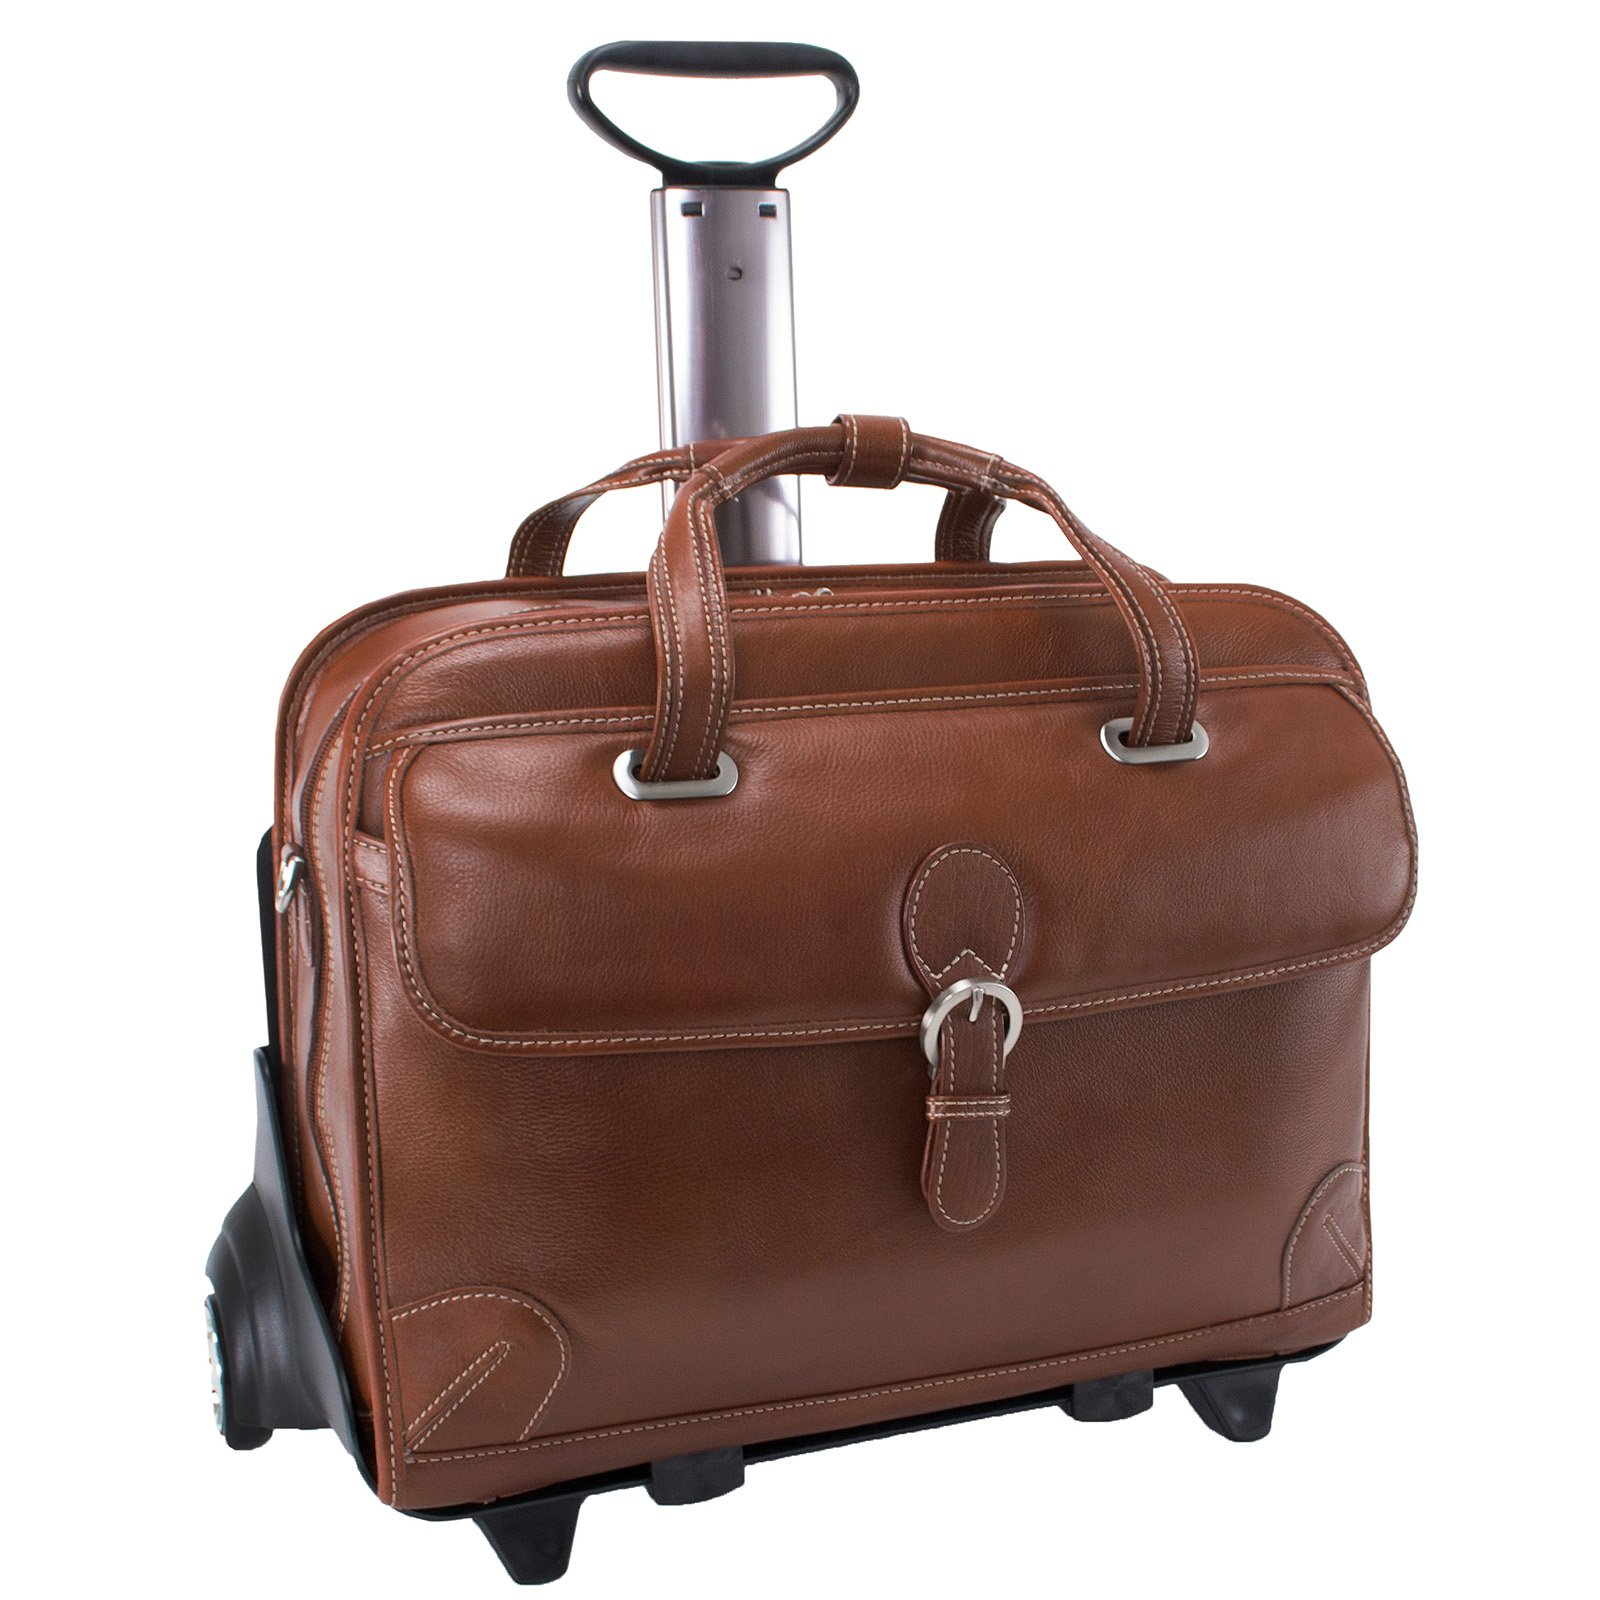 Siamod Carugetto Detachable-Wheeled Leather Laptop Case Cognac by McKleinUSA